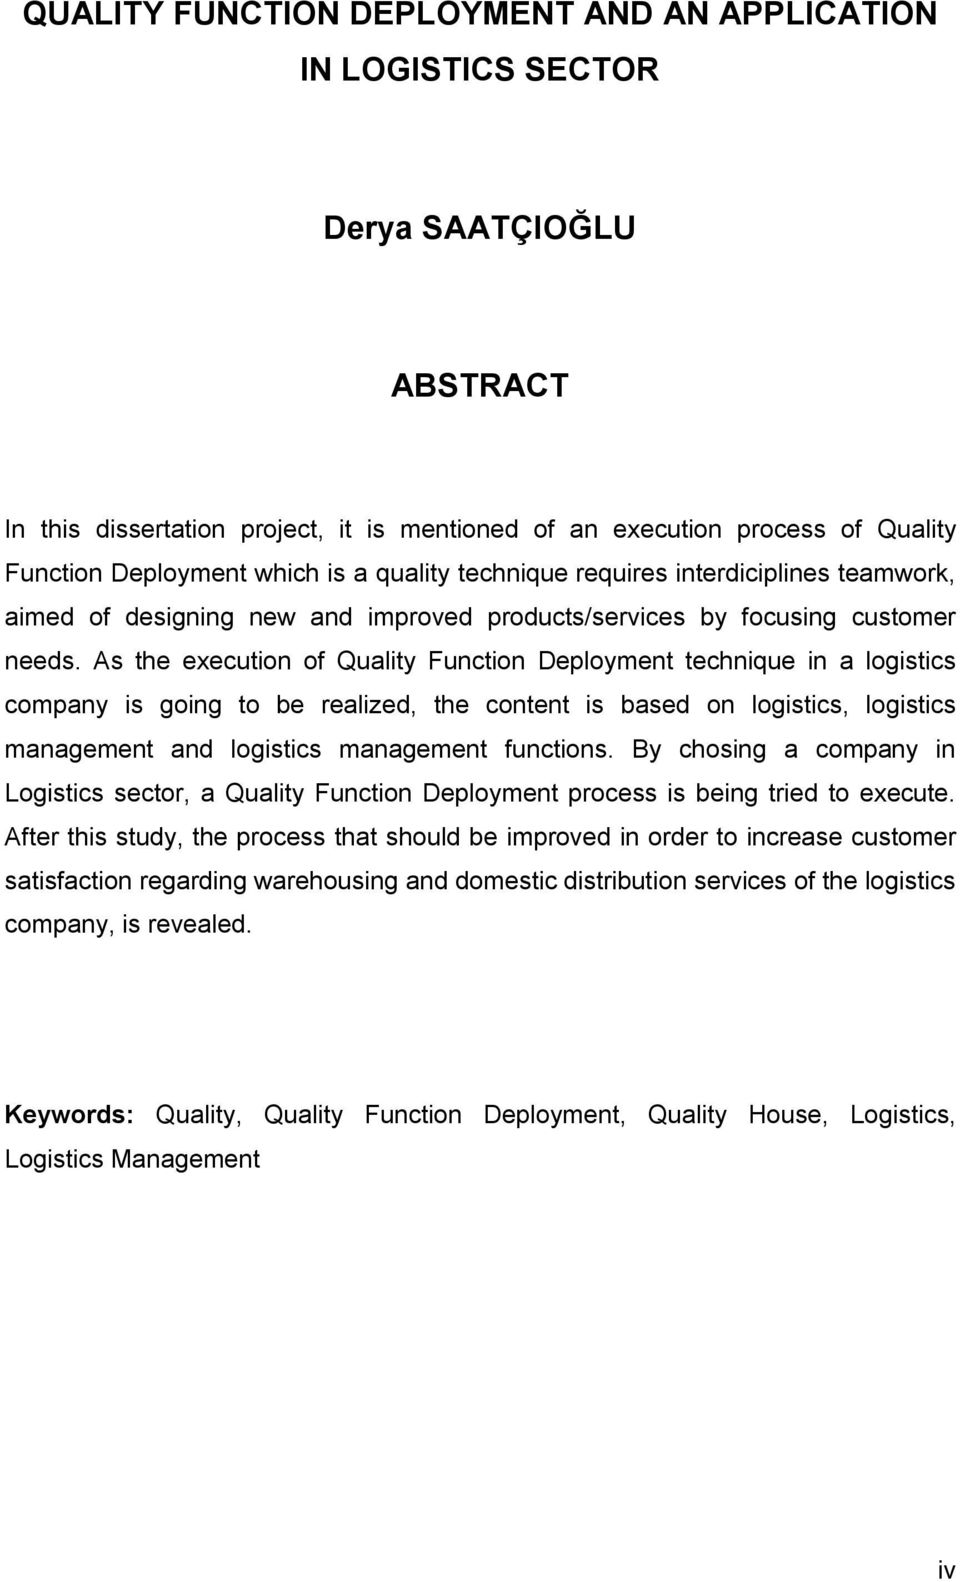 As the execution of Quality Function Deployment technique in a logistics company is going to be realized, the content is based on logistics, logistics management and logistics management functions.